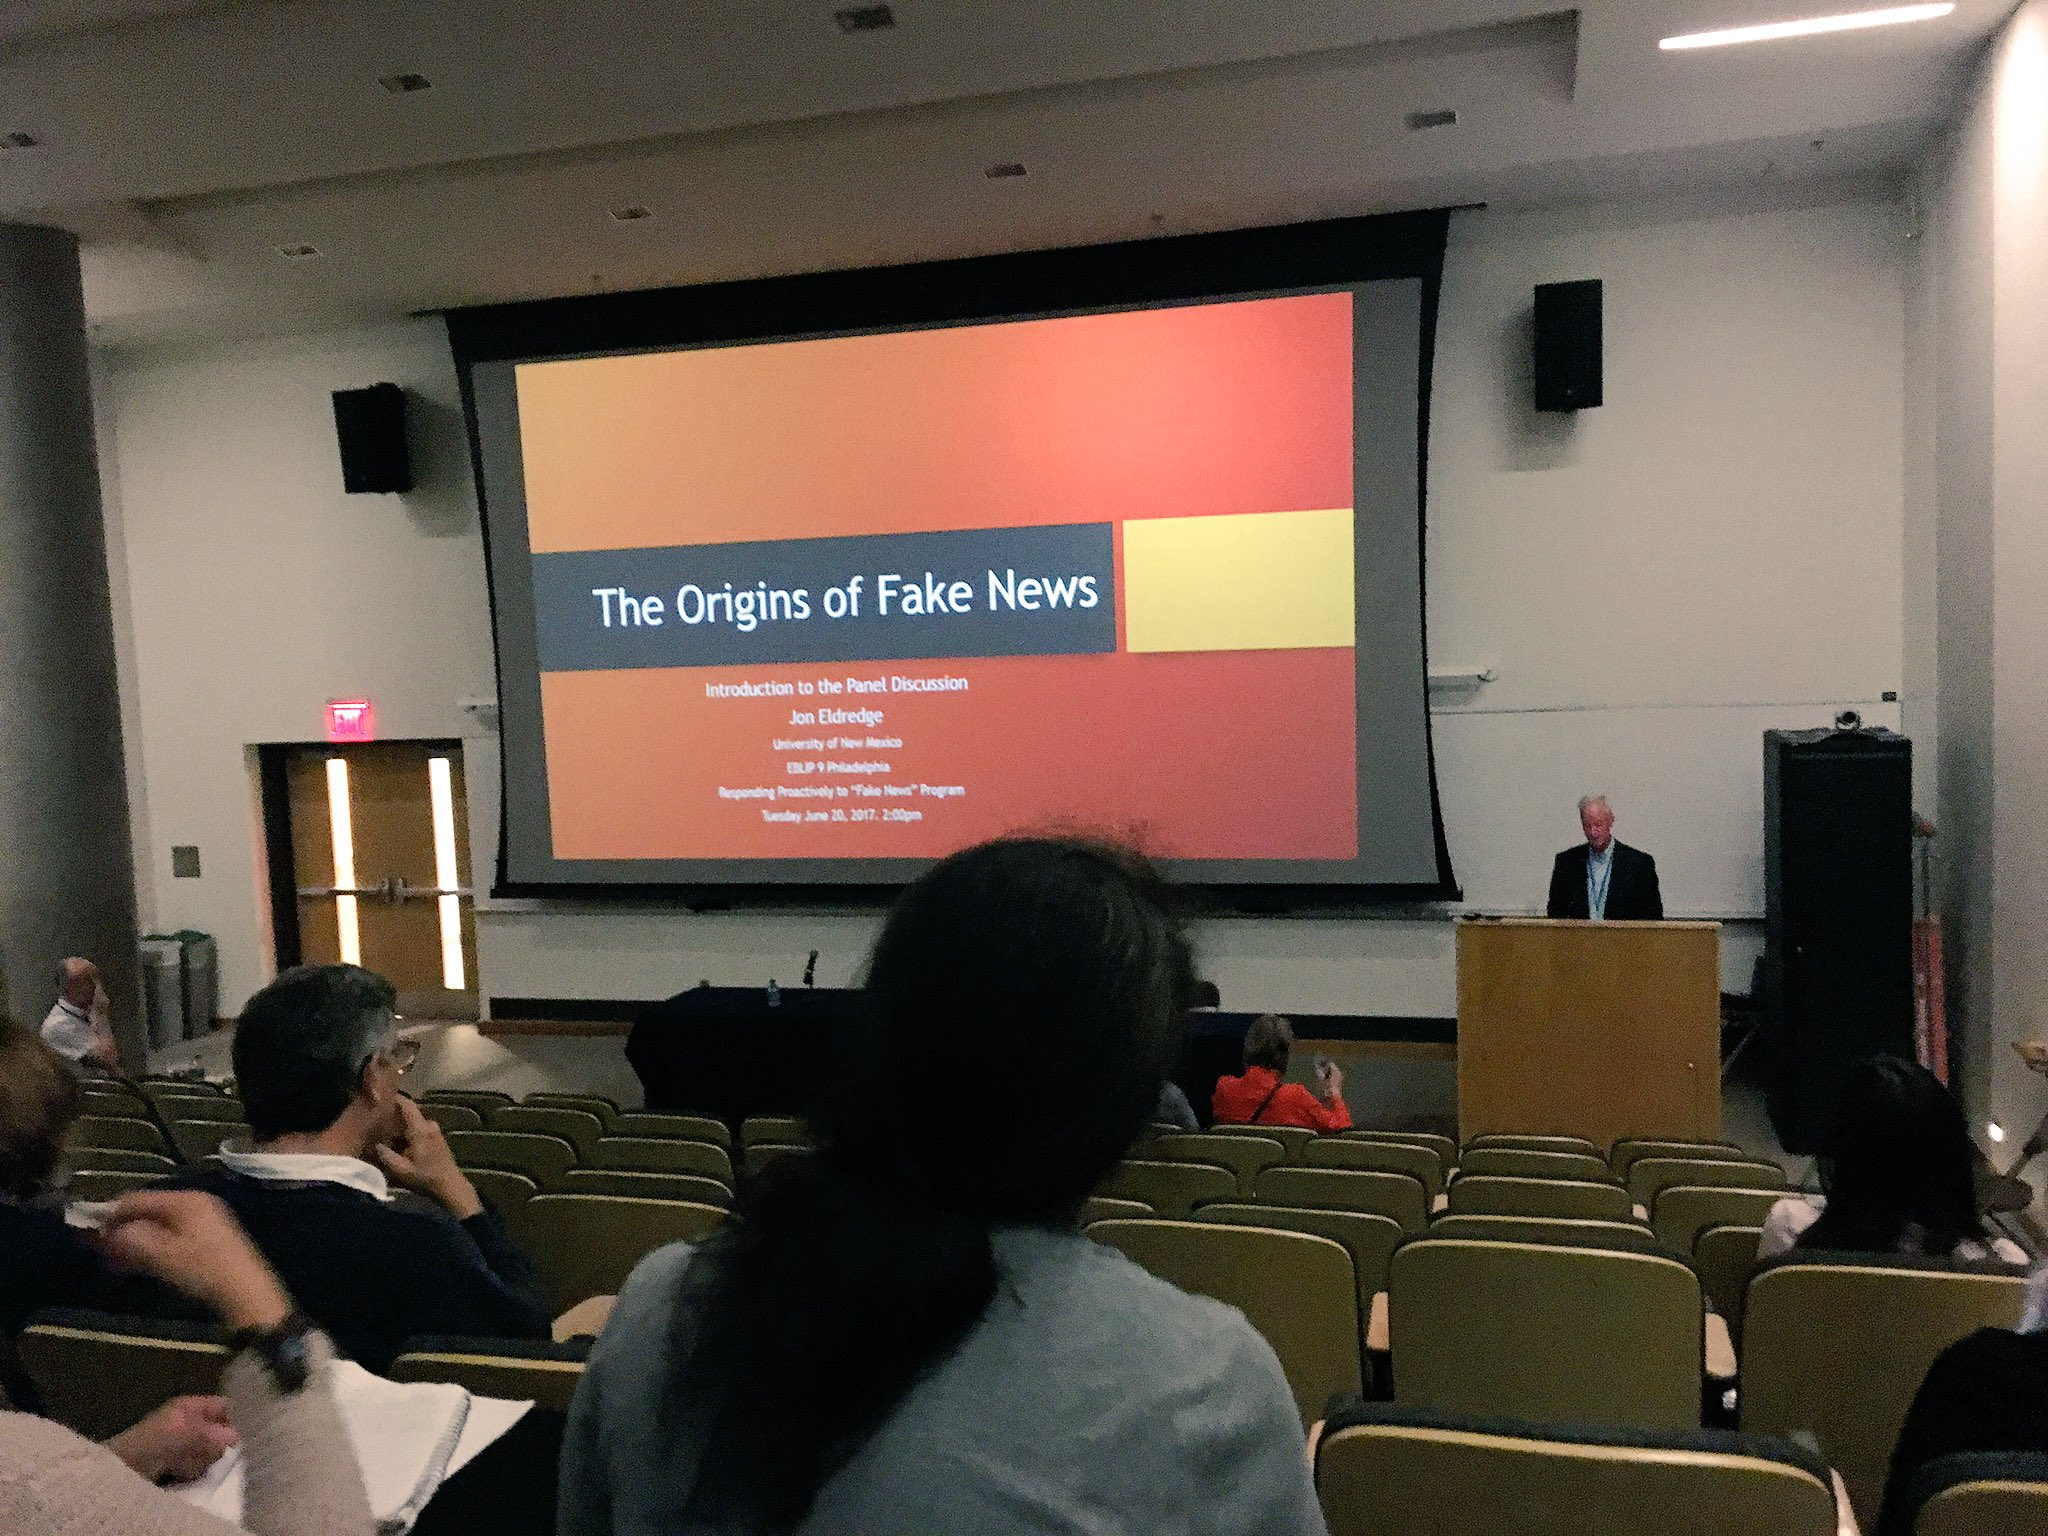 Jon Eldredge broaches the topic of Fake News at #EBLIP9 @eblip9 https://t.co/Qhr9P8XGNp